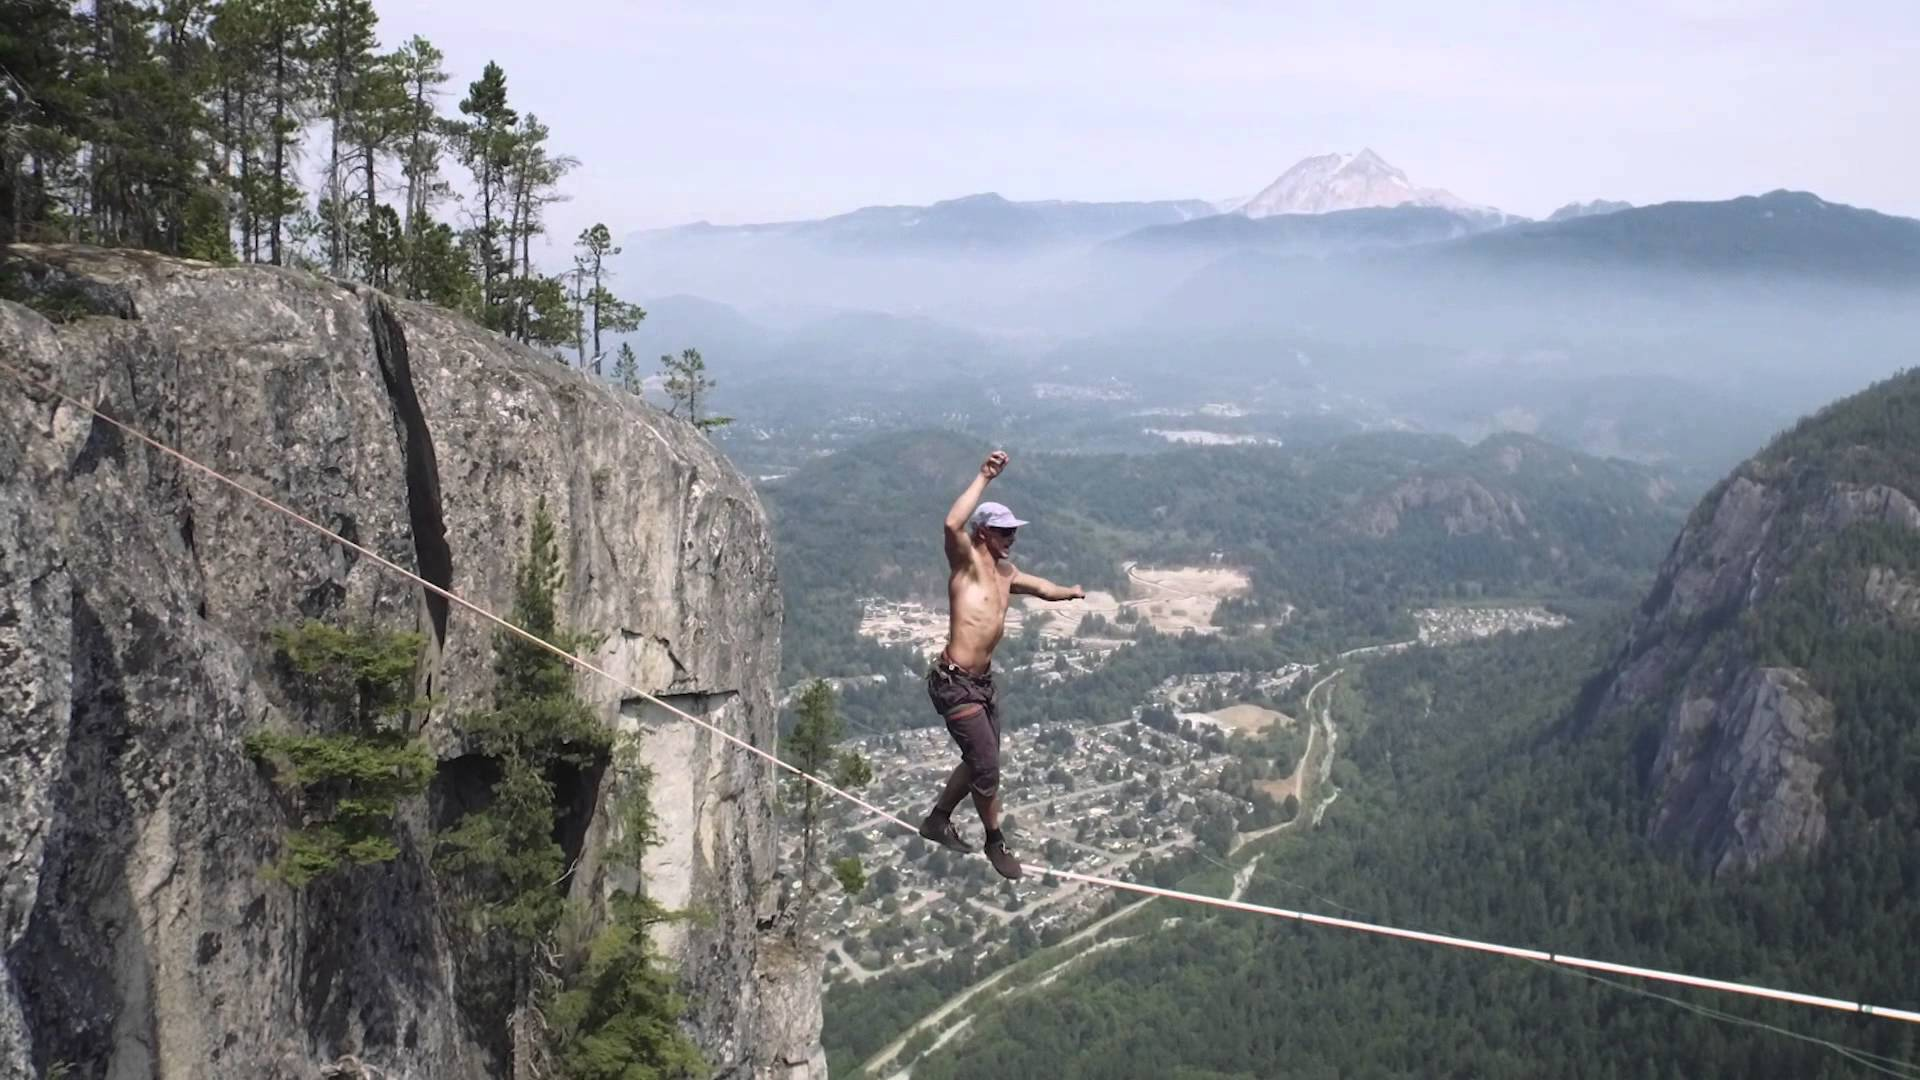 Stunt Wallpaper Hd Terrifying Moment Man Almost Falls 950ft To His Death